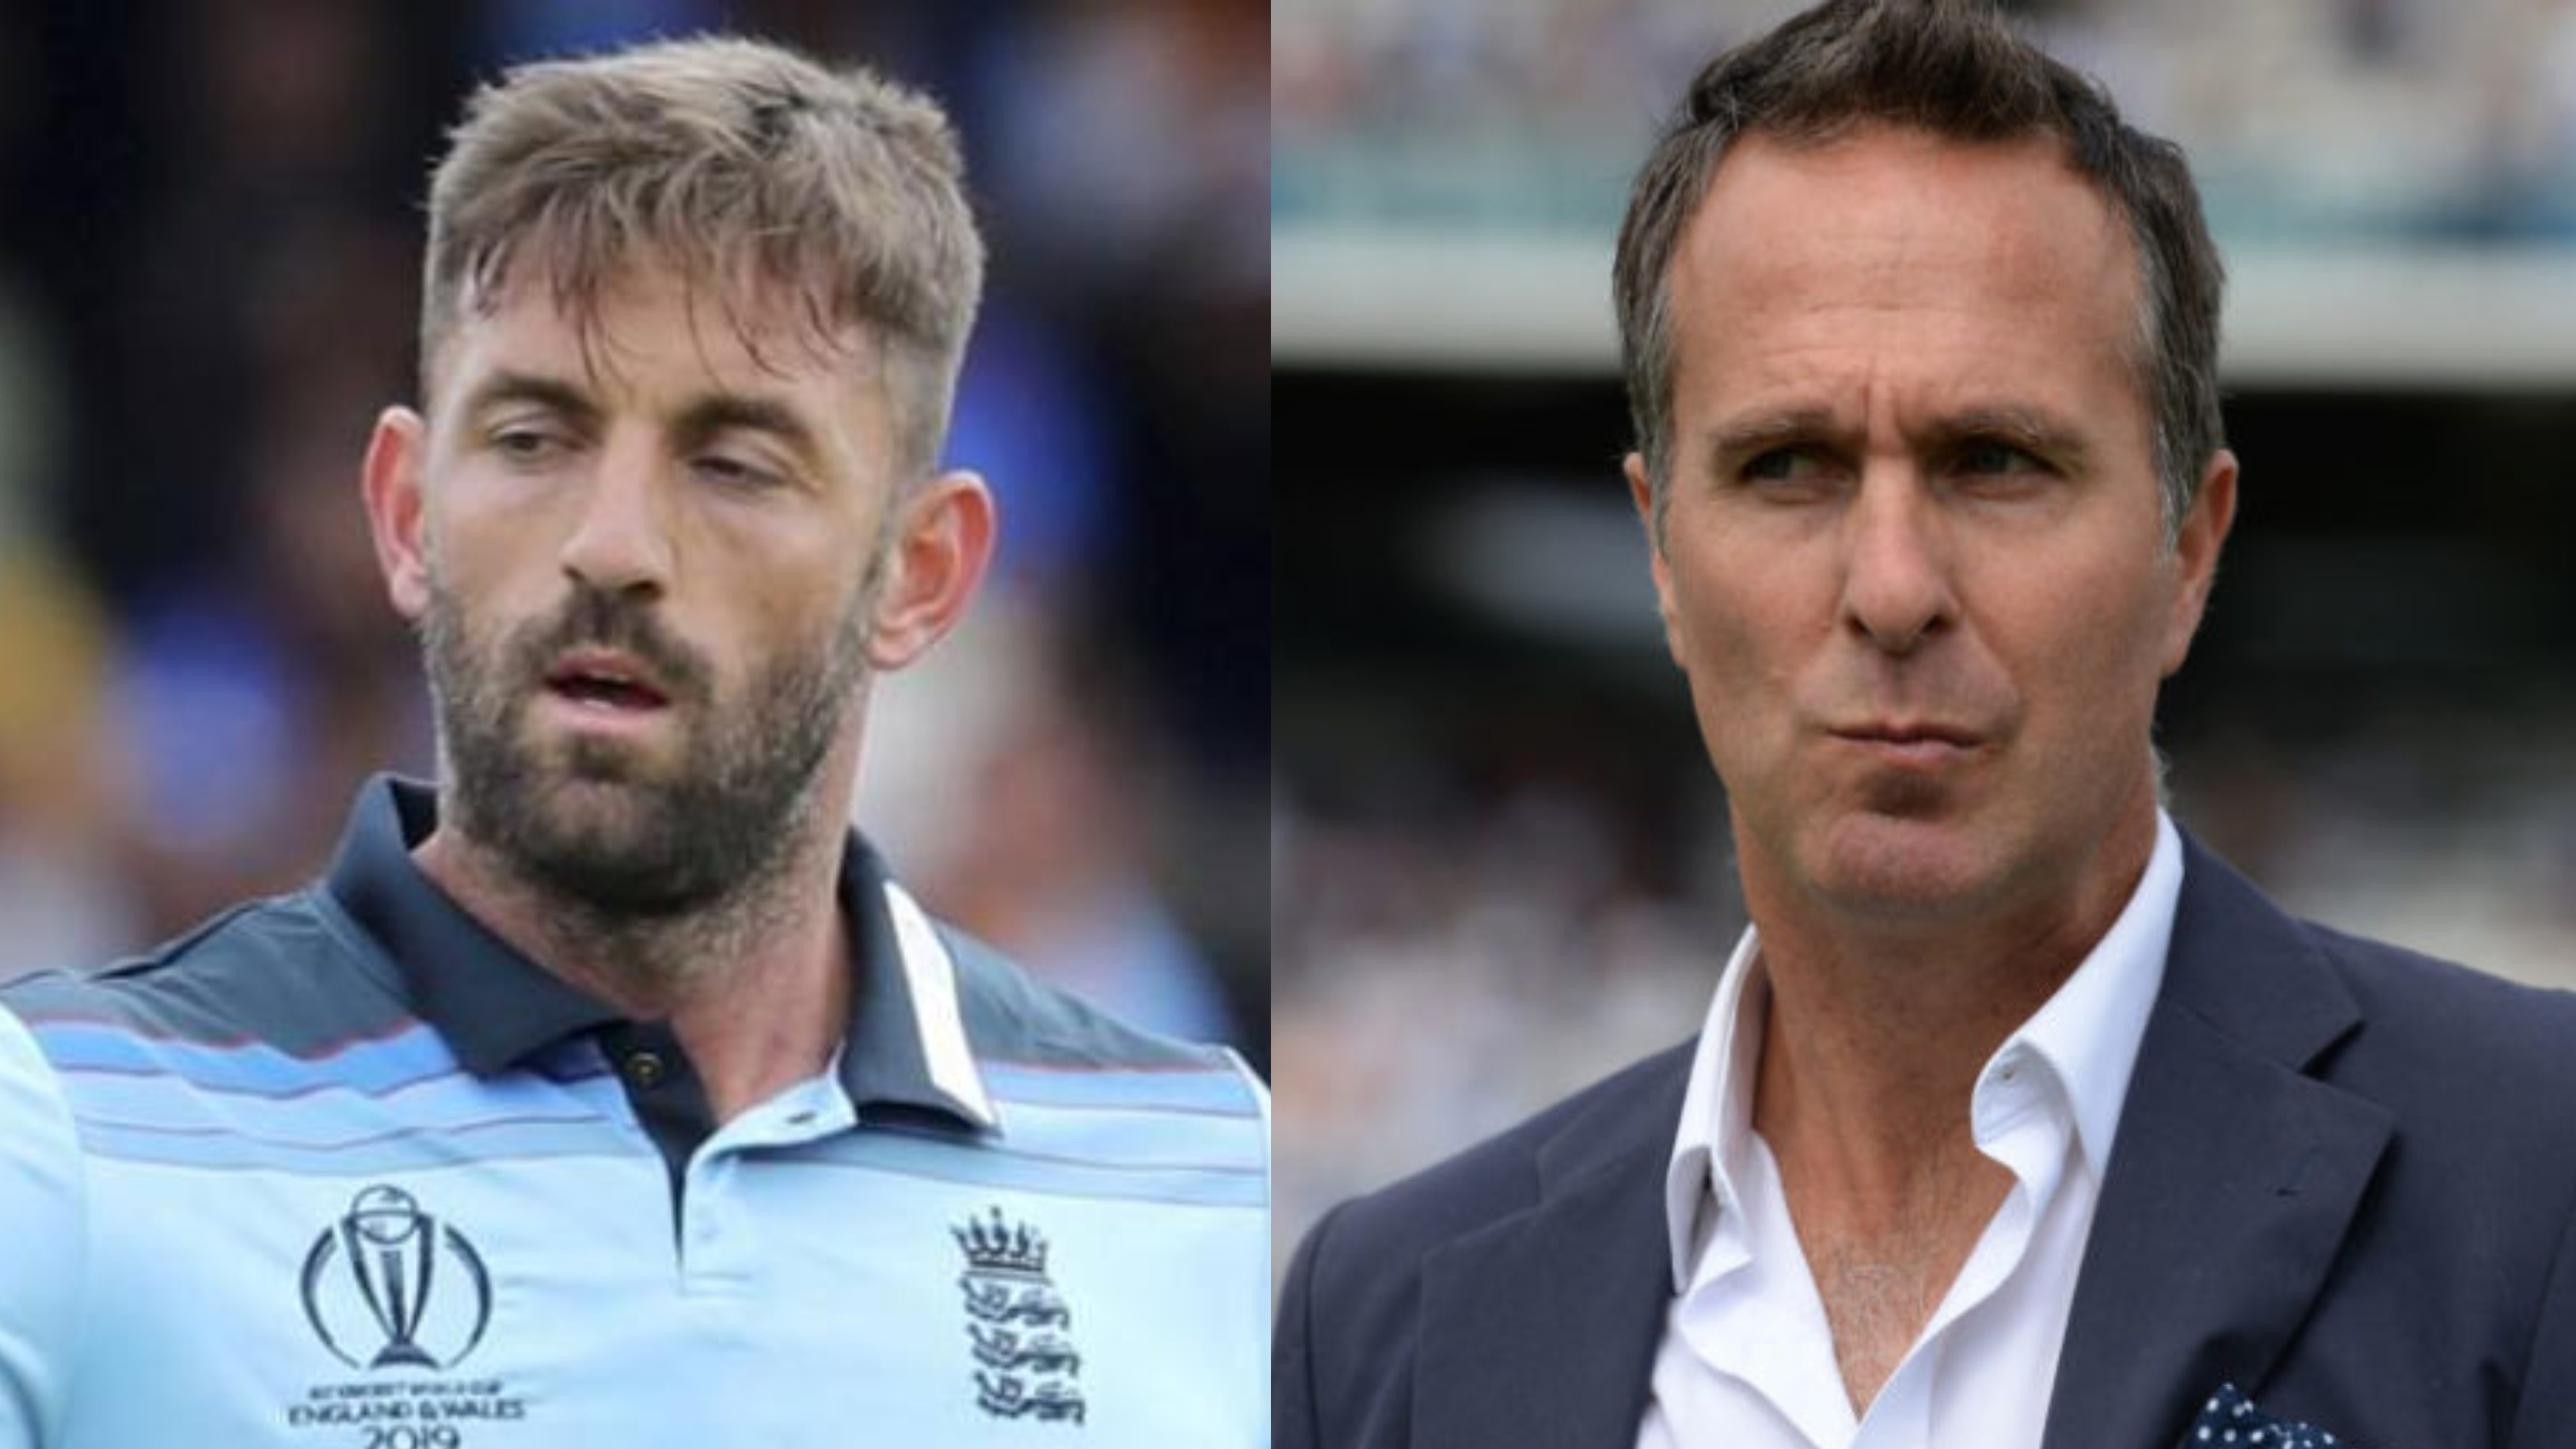 Michael Vaughan calls Liam Plunkett knowing about his omission on social media 'a disgrace'